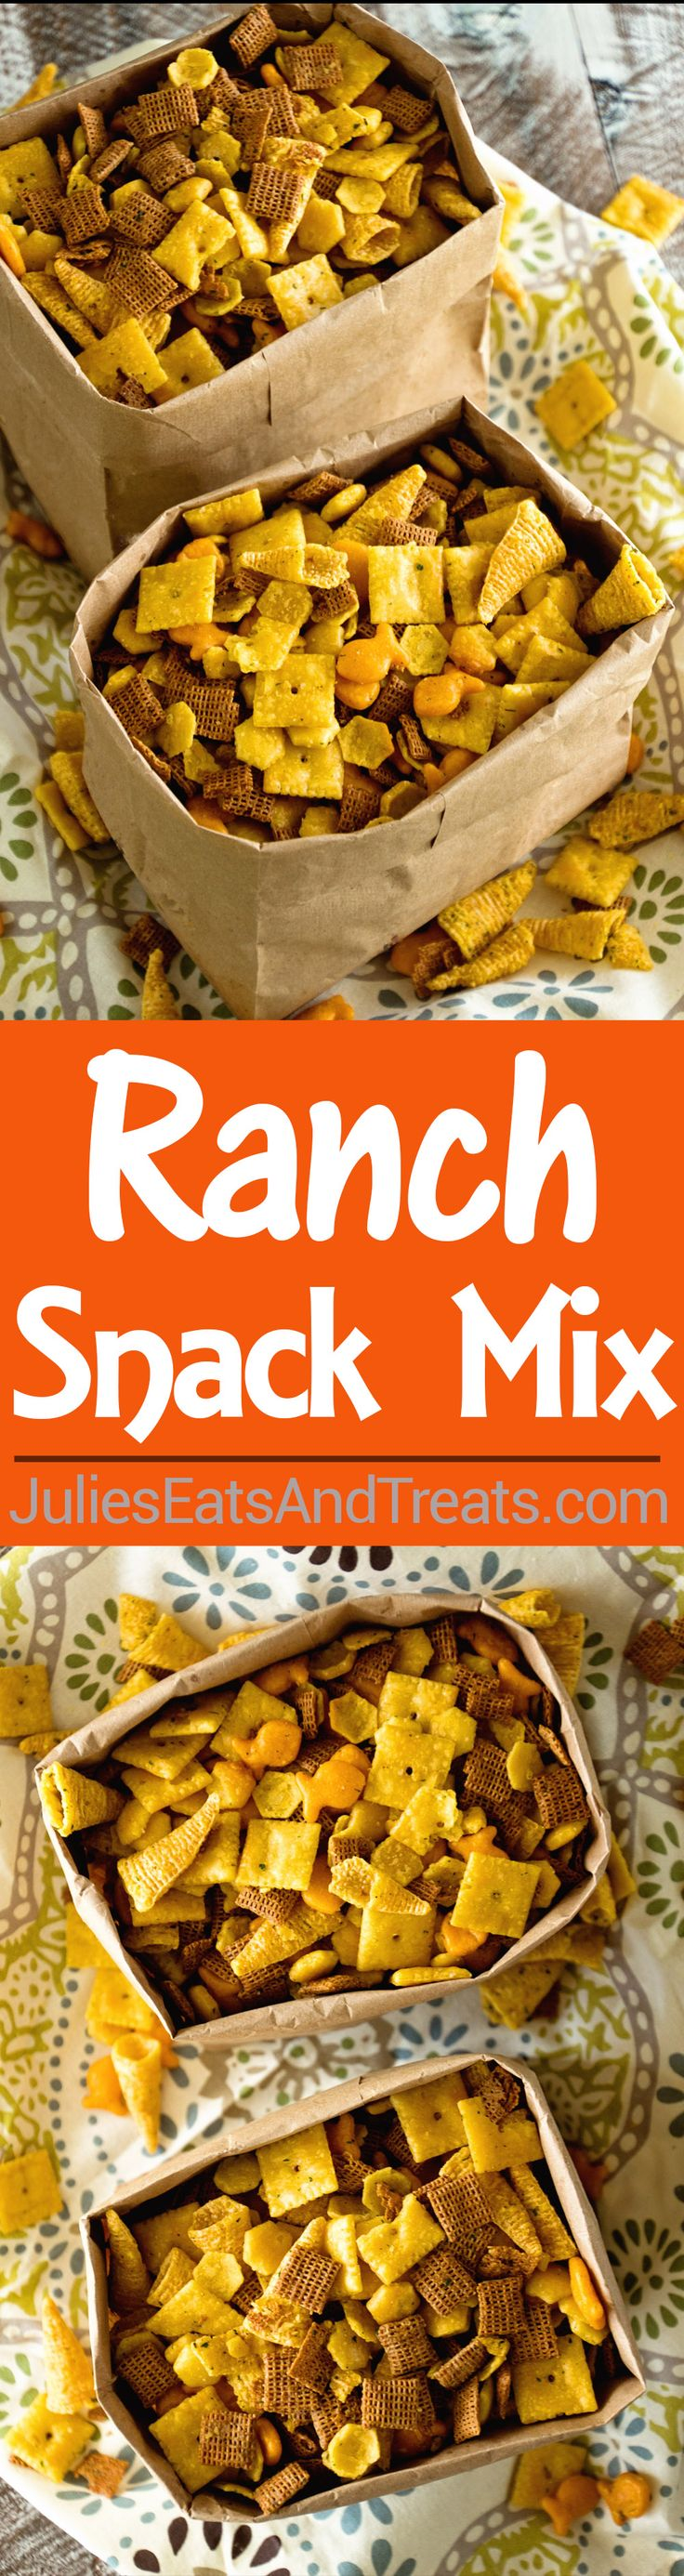 Ranch Snack Mix Recipe ~ Delicious, Easy, Homemade Snack Mix Loaded with Chex, Bugles, Goldfish and Oyster Crackers then Seasoned with Ranch Dressing Mix!